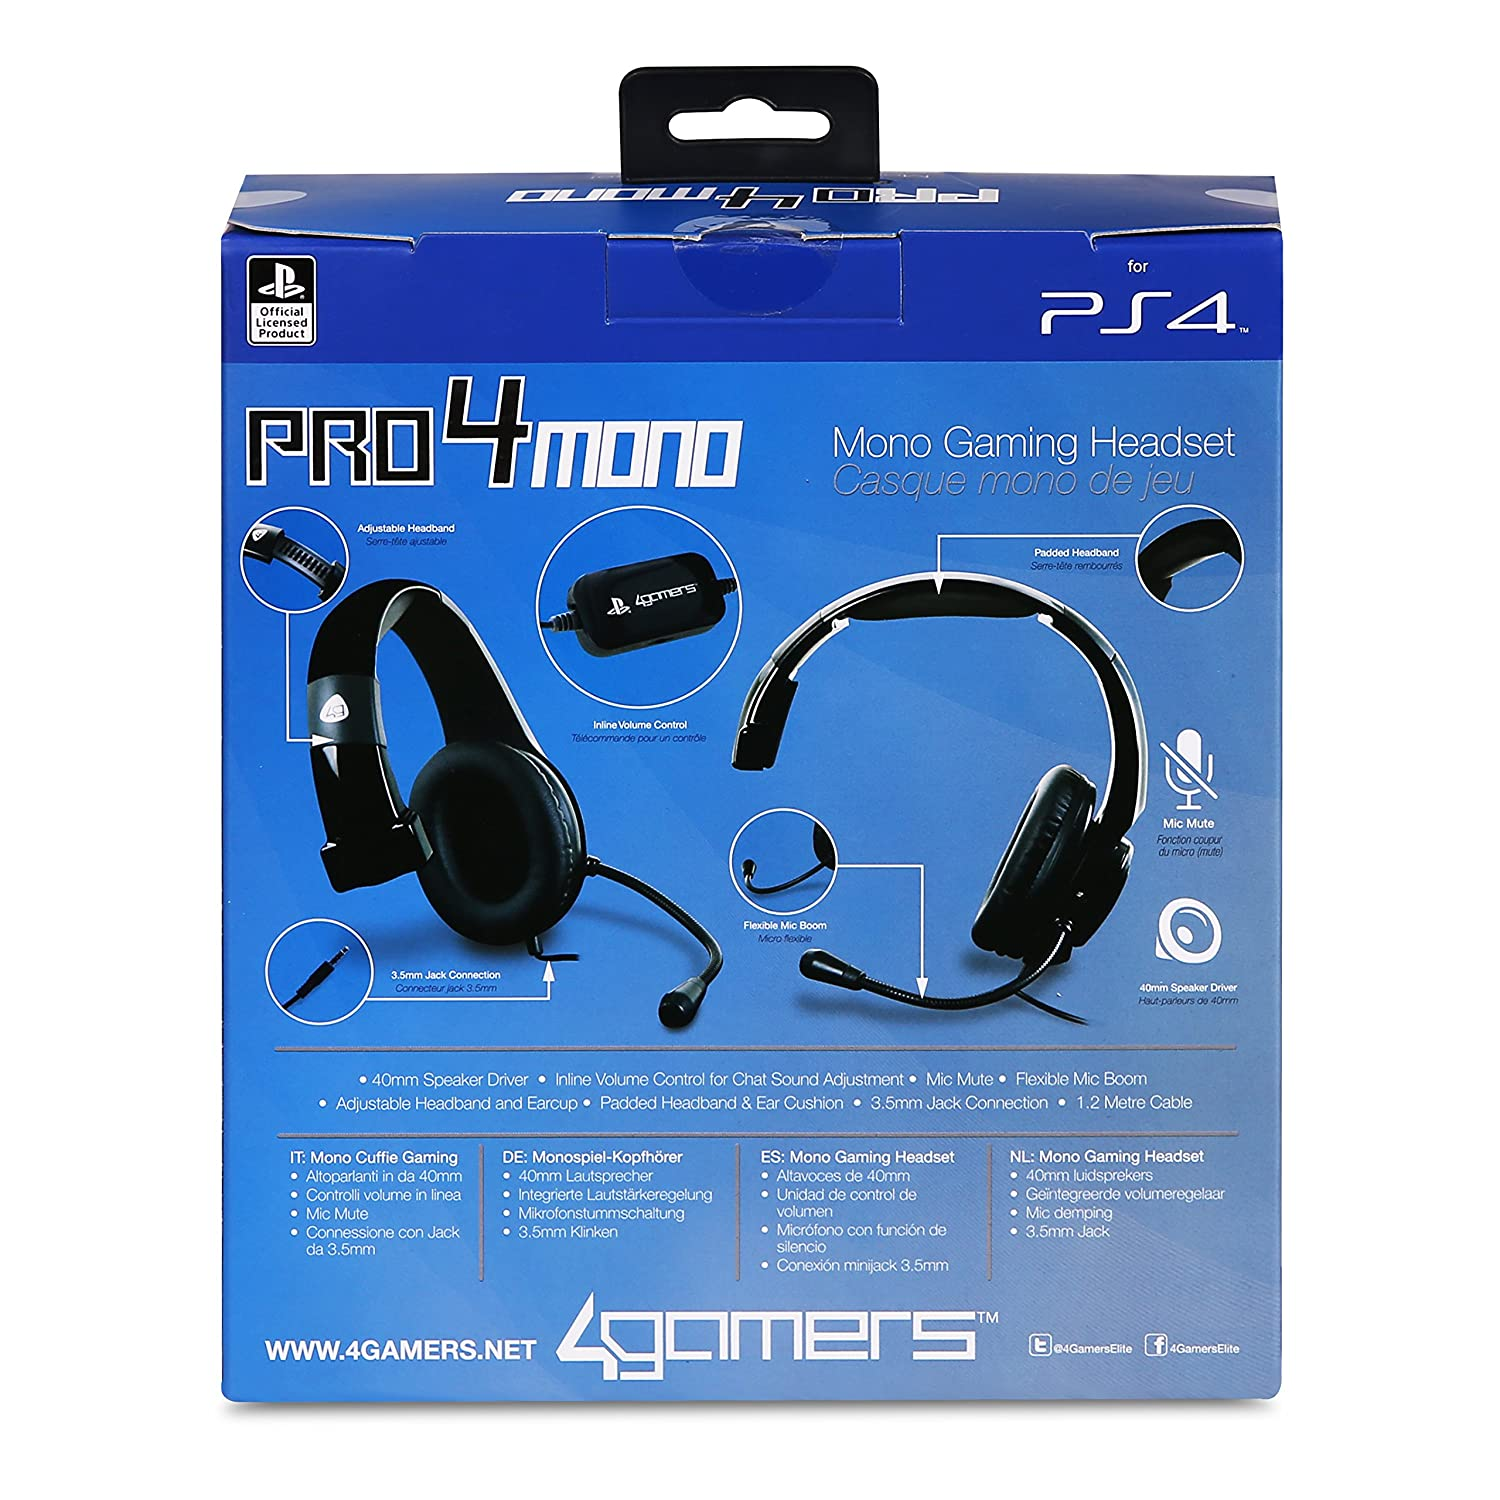 Playstation 4 Officially Licensed Pro4 Mono Gaming Headset Ps4 Headphone Jack Wiring Pc Video Games